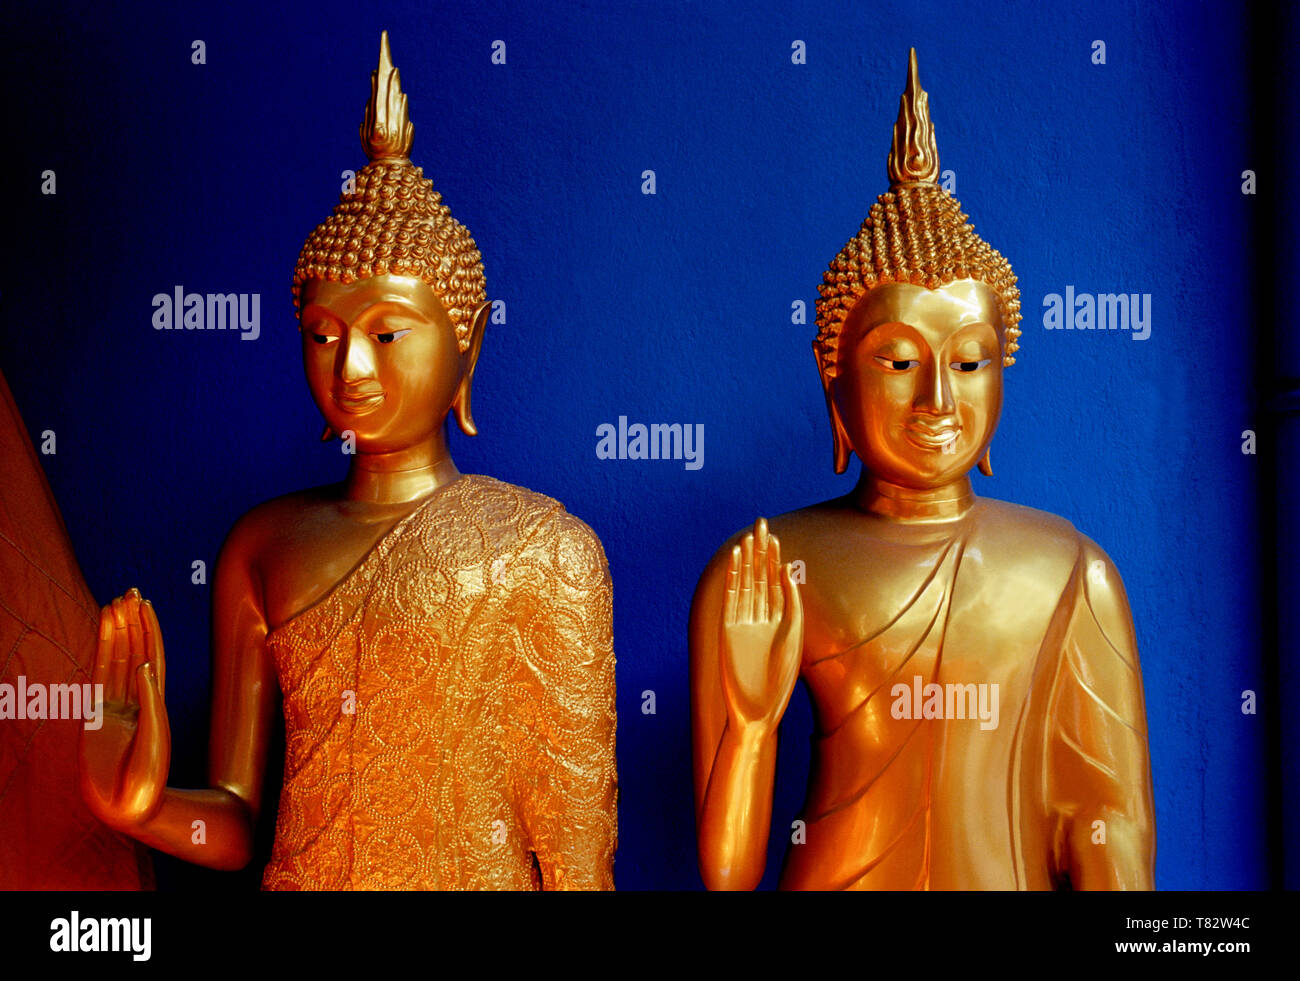 Buddha statues in Bamrung Muang Road in Bangkok in Thailand in Southeast Asia Far East. Ethereal Meditation Mindfulness Spirituality Gold The Stock Photo